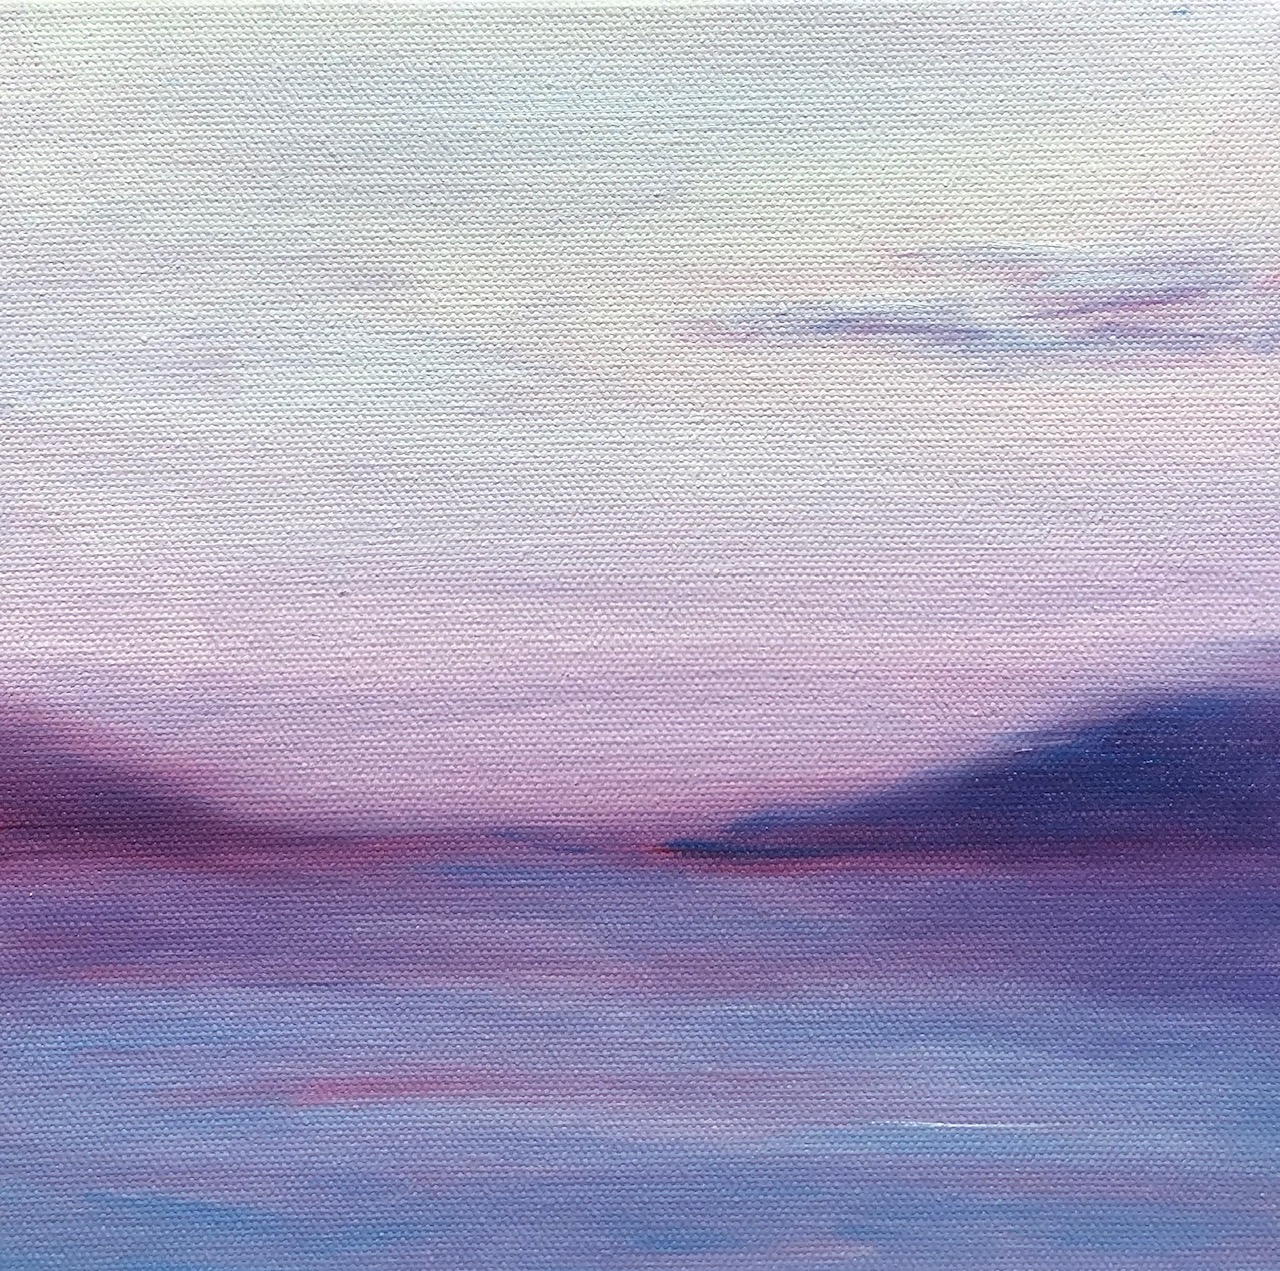 Purple sunset by Elena Whitman